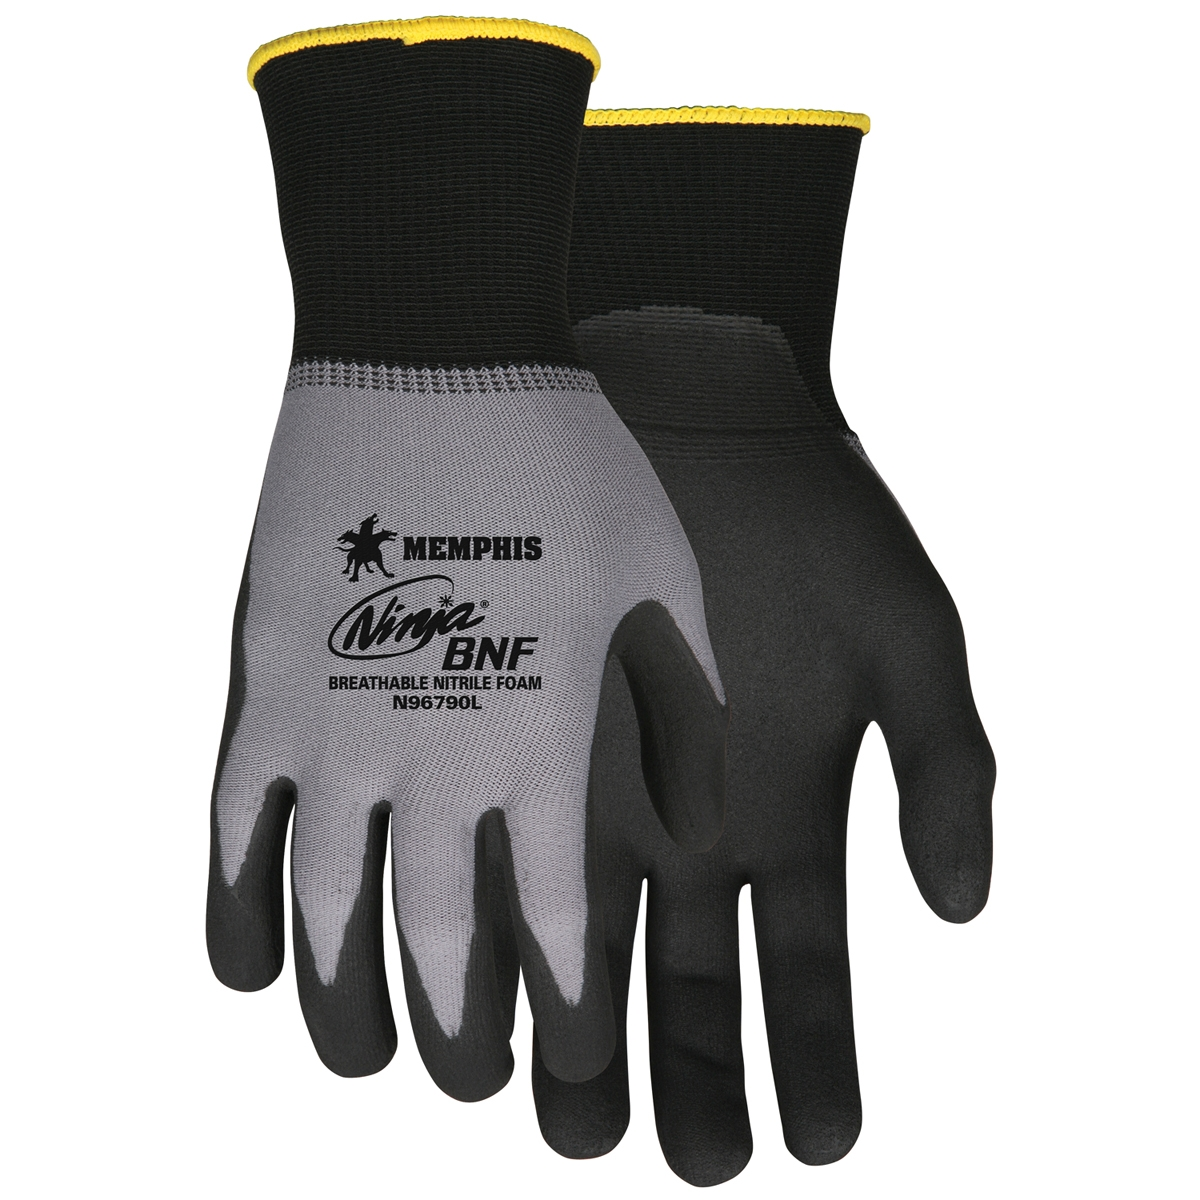 N96790 : Memphis Ninja Gloves - 15 Gauge Nylon/Spandex Knit - Nitrile Foam Coated Palm - Black and Gray